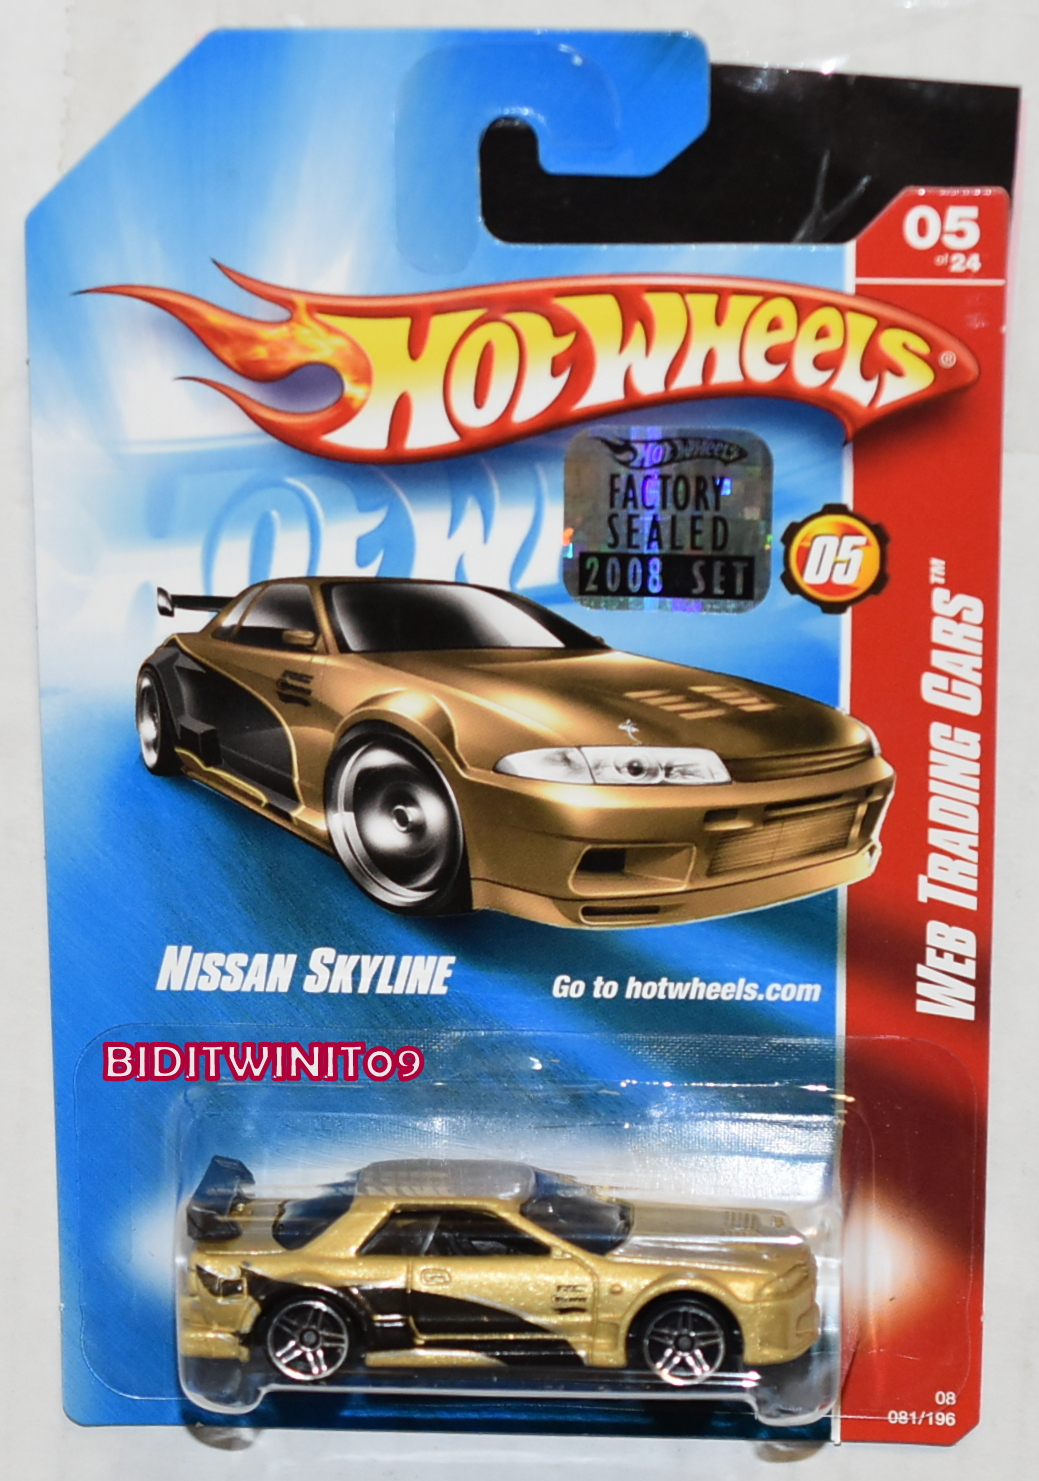 HOT WHEELS 2008 WEB TRADING CARS NISSAN SKYLINE #05/24 GOLD FACTORY SEALED